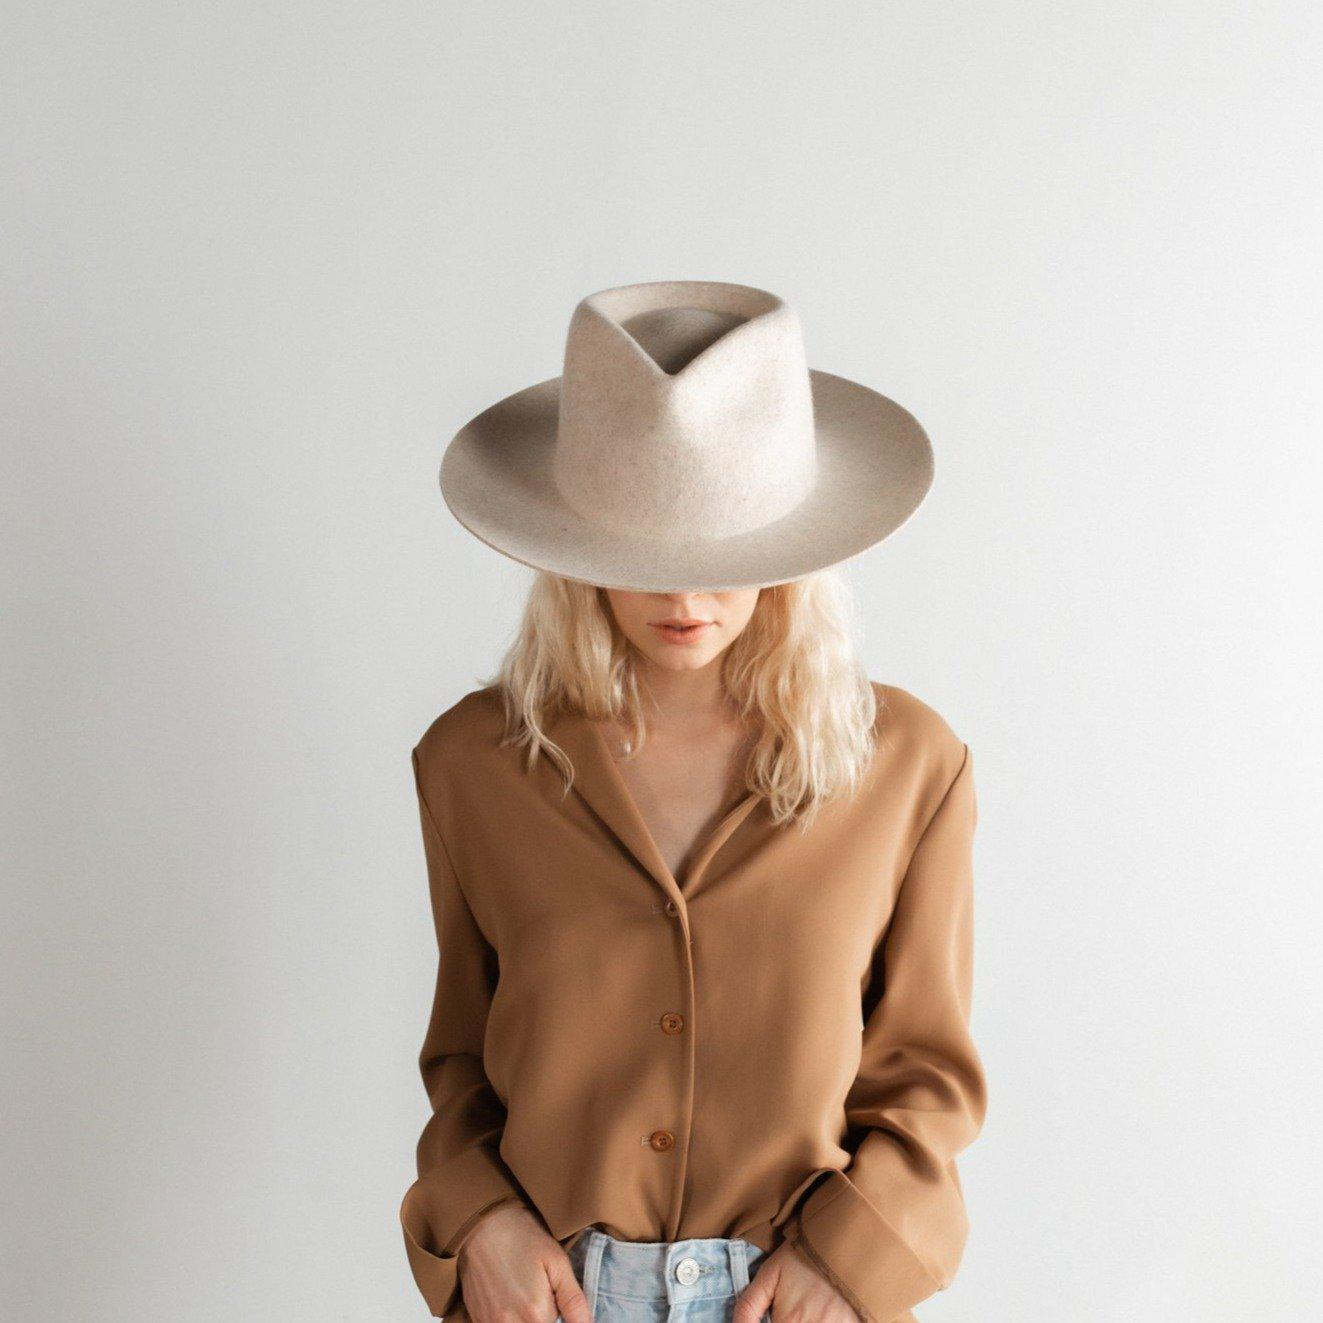 GIGI PIP Hats for Women- Zephyr Rancher - Mix Ivory-Felt Hats